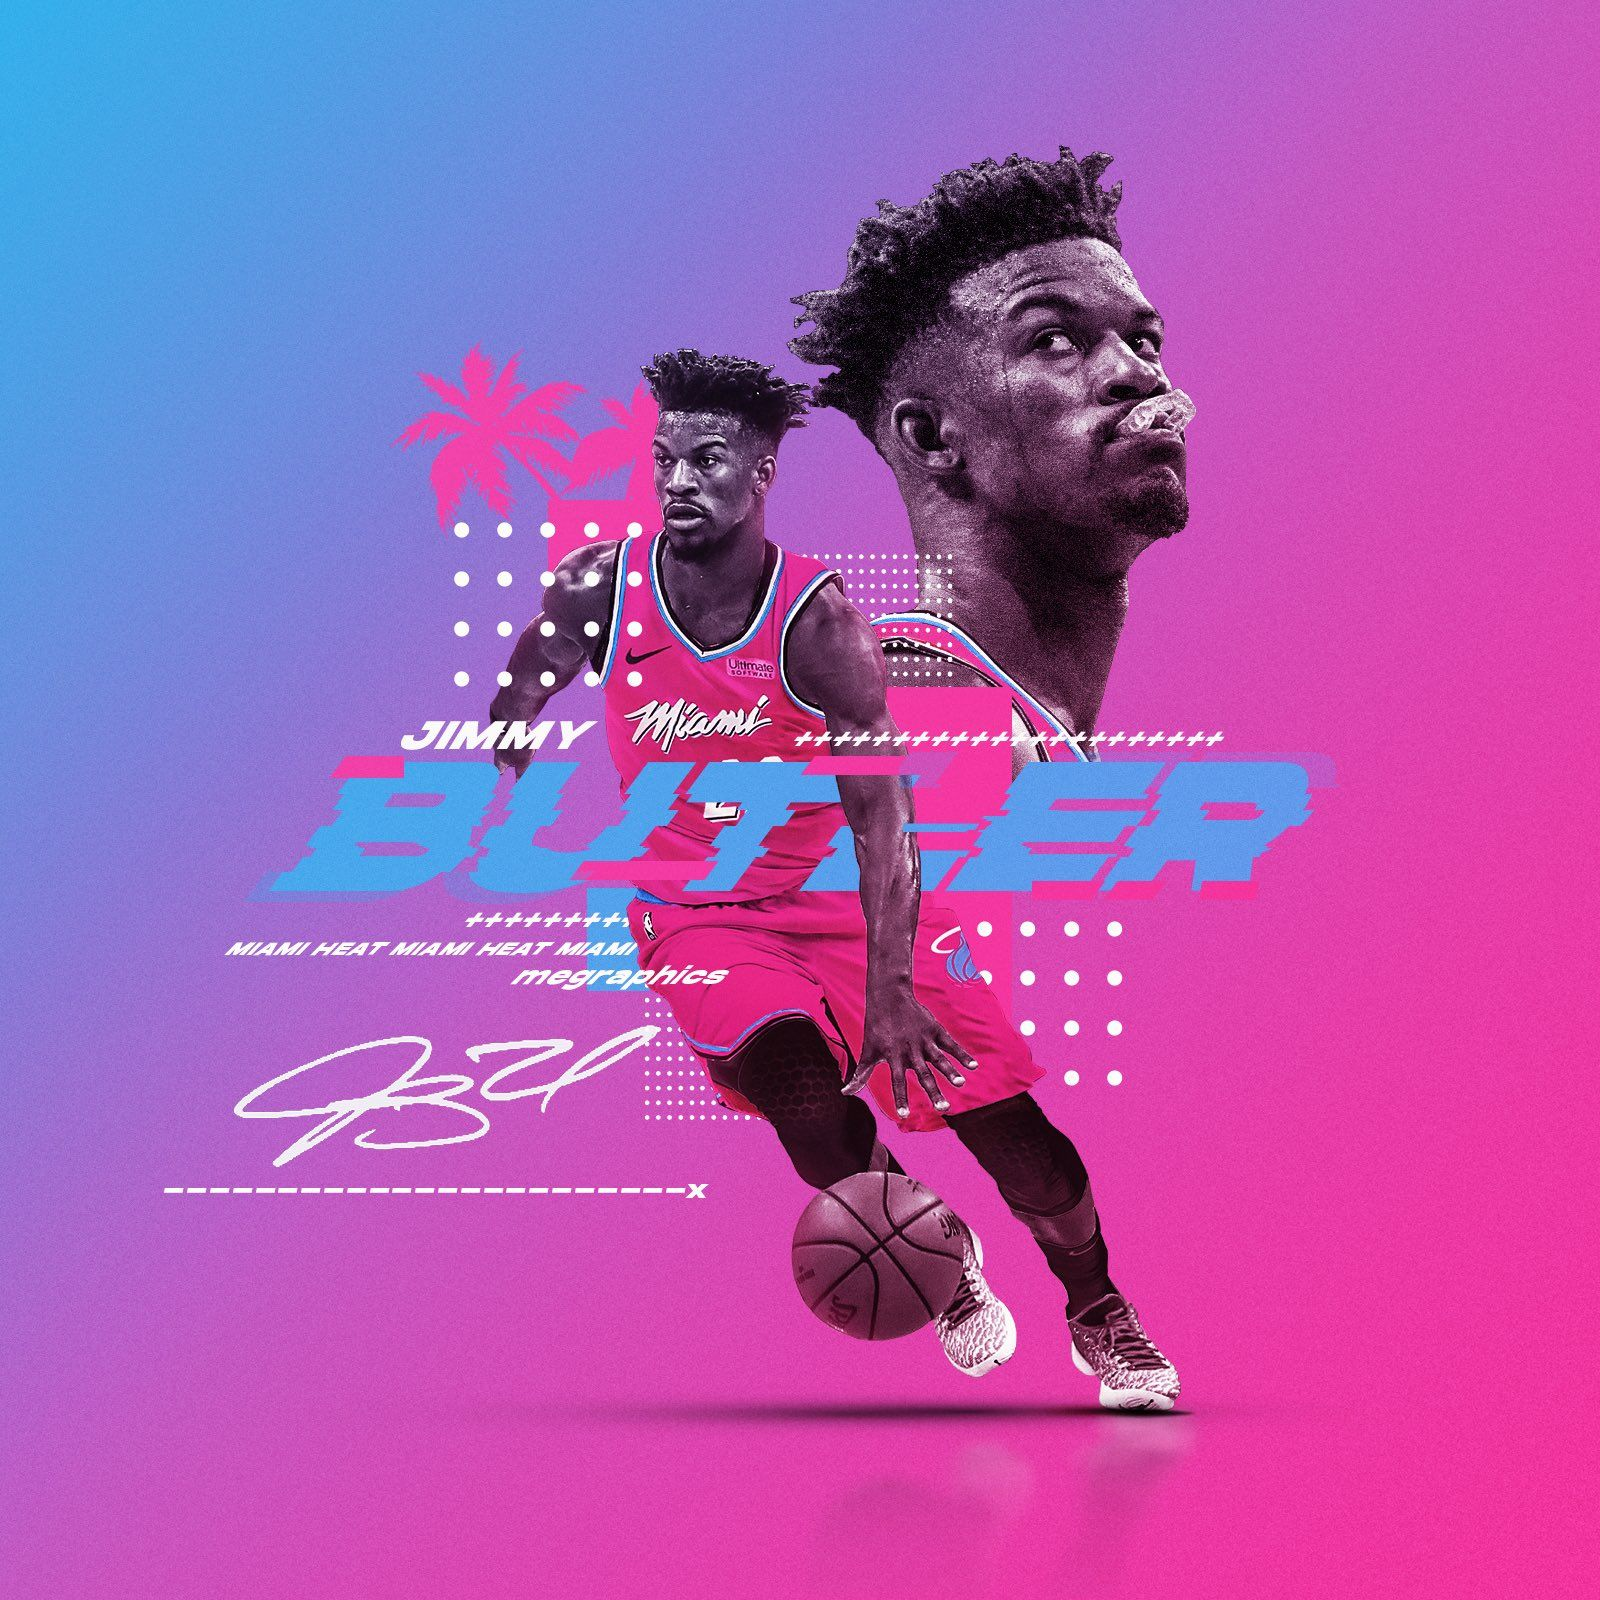 Mike Eberharter On Twitter Miami Heat Miami Sports Graphic Design